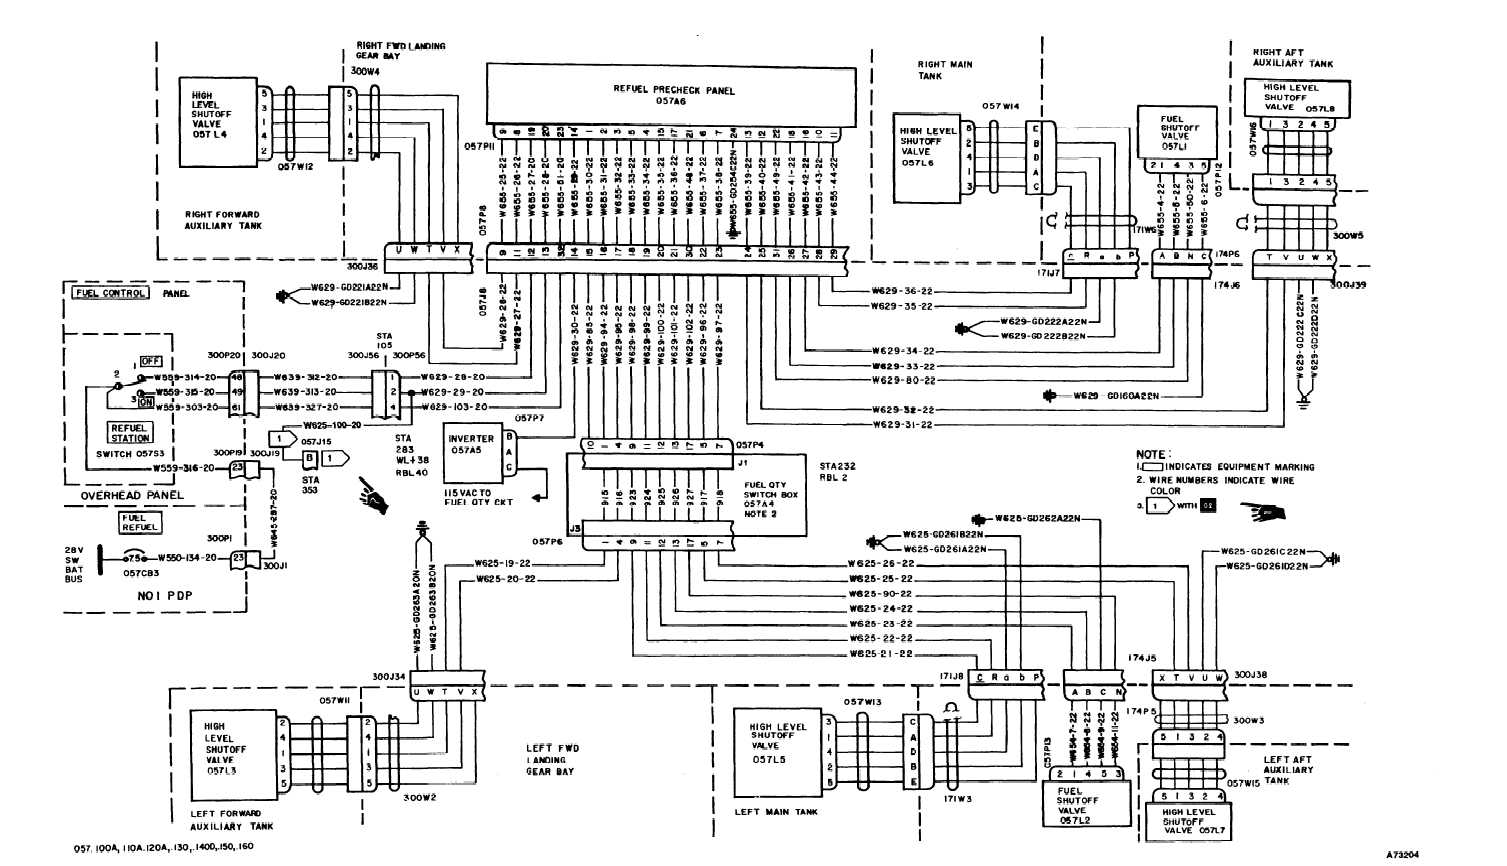 Toyota Land Cruiser 2004 Electrical Wiring Diagram Engine Mechanical together with 2JZ GTE 20VVTi 20JZS161 20Aristo 20Engine 20Wiring further The Old Pc Power Supply Circuit furthermore Star Delta Connection Diagram moreover 2003 Ford Explorer Wiring Diagram Pdf. on electrical wiring diagram pdf